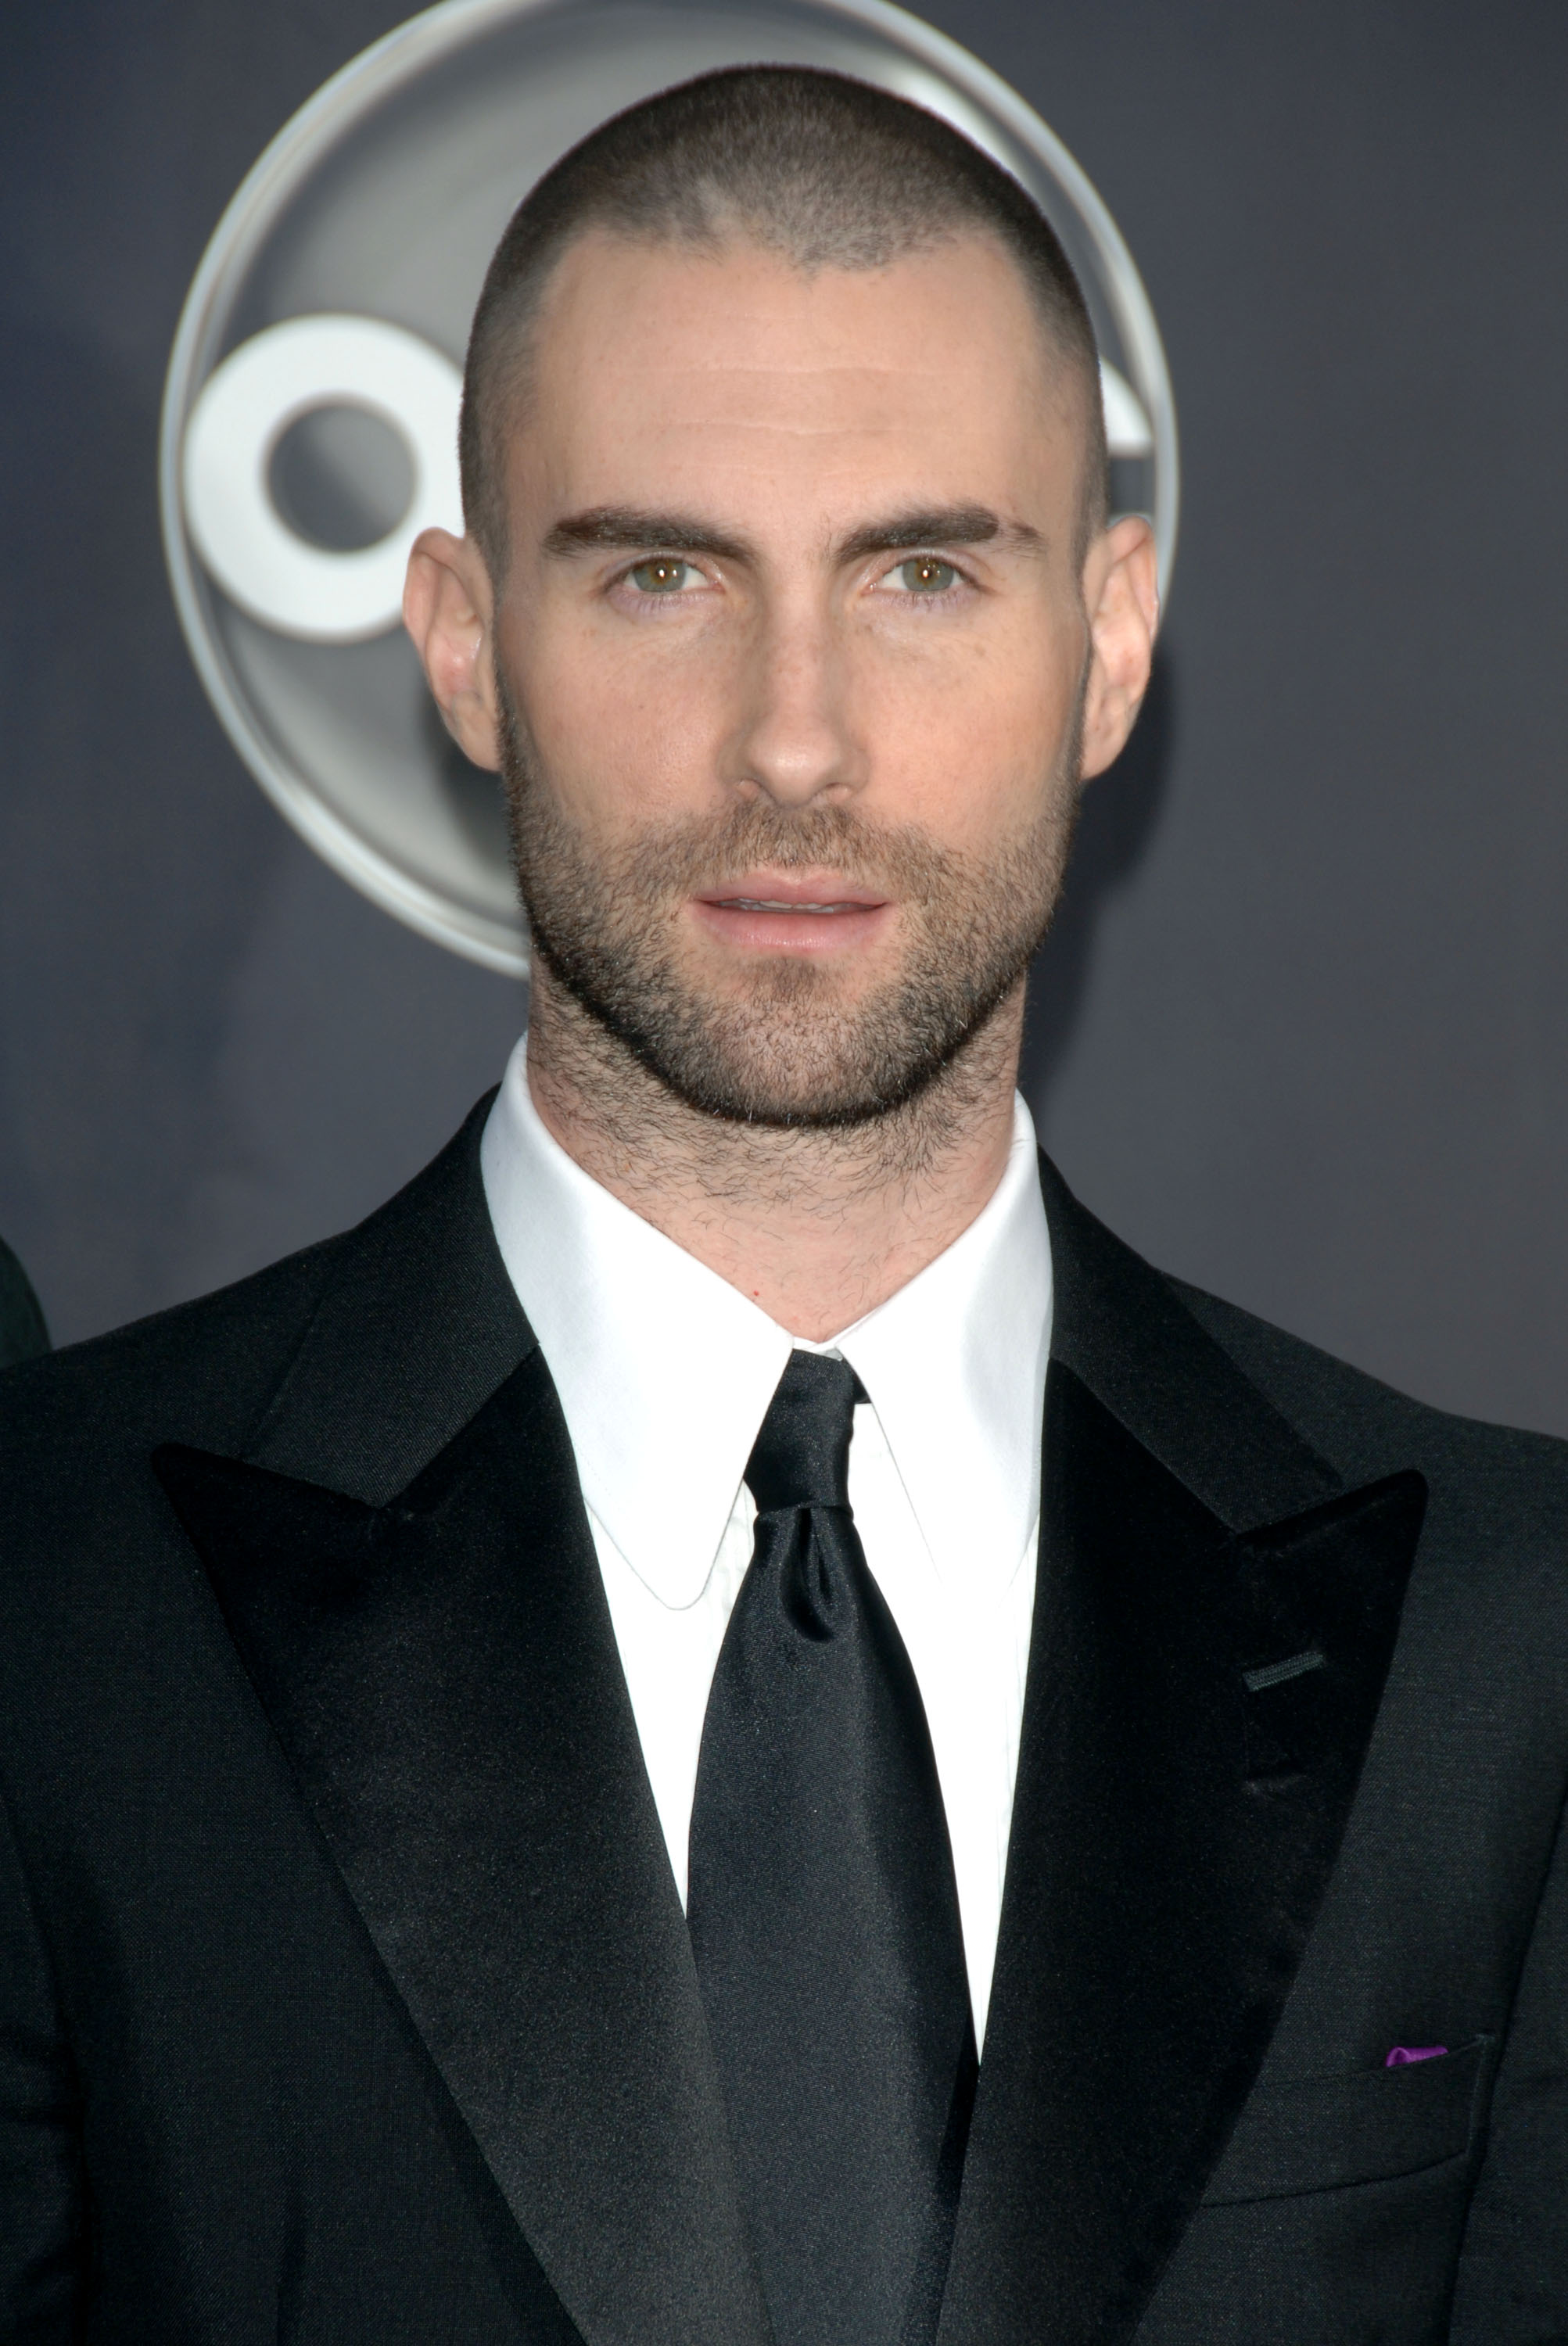 Shaved Head Hair Style 30 Adam Levine Hair Inspiration: The Classy Shaved Head